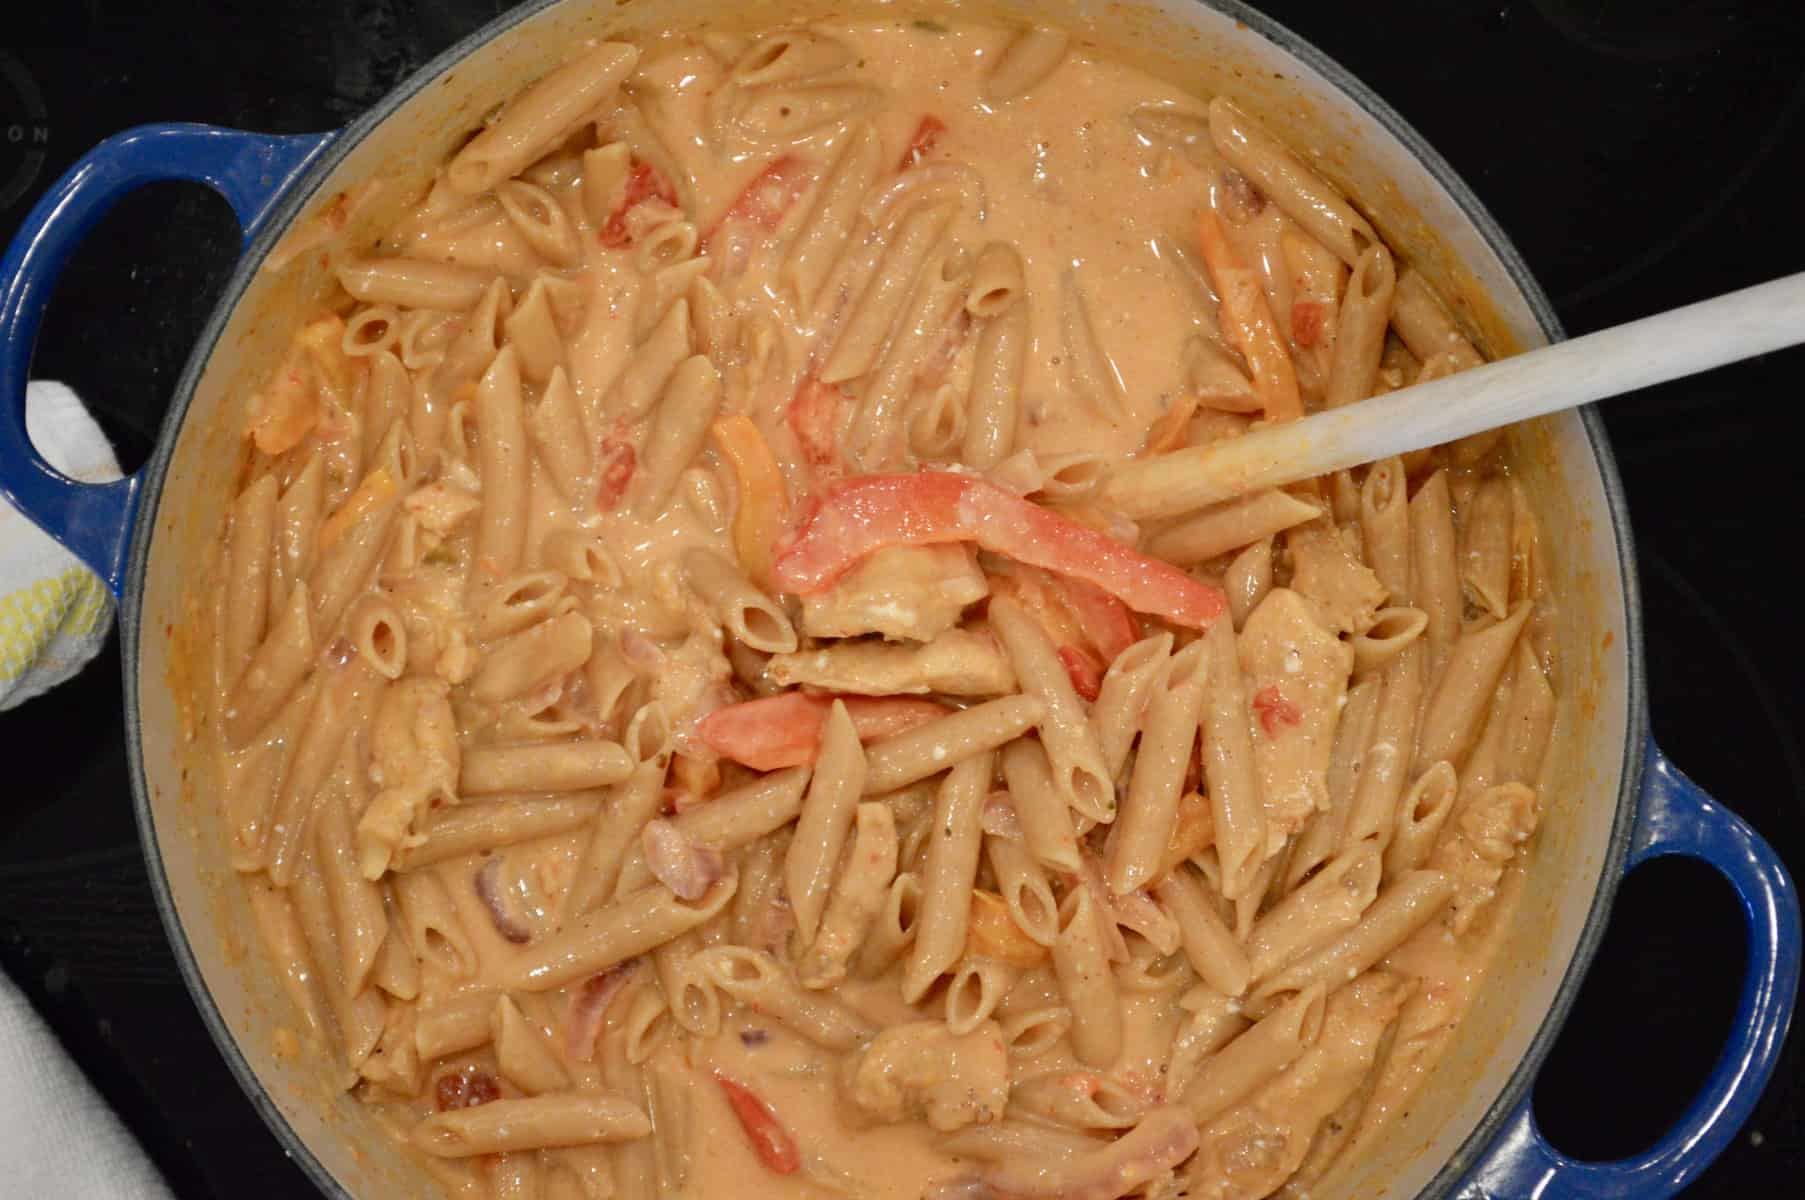 One-Pot Chicken Fajita Pasta with red bell peppers and whole grain penne